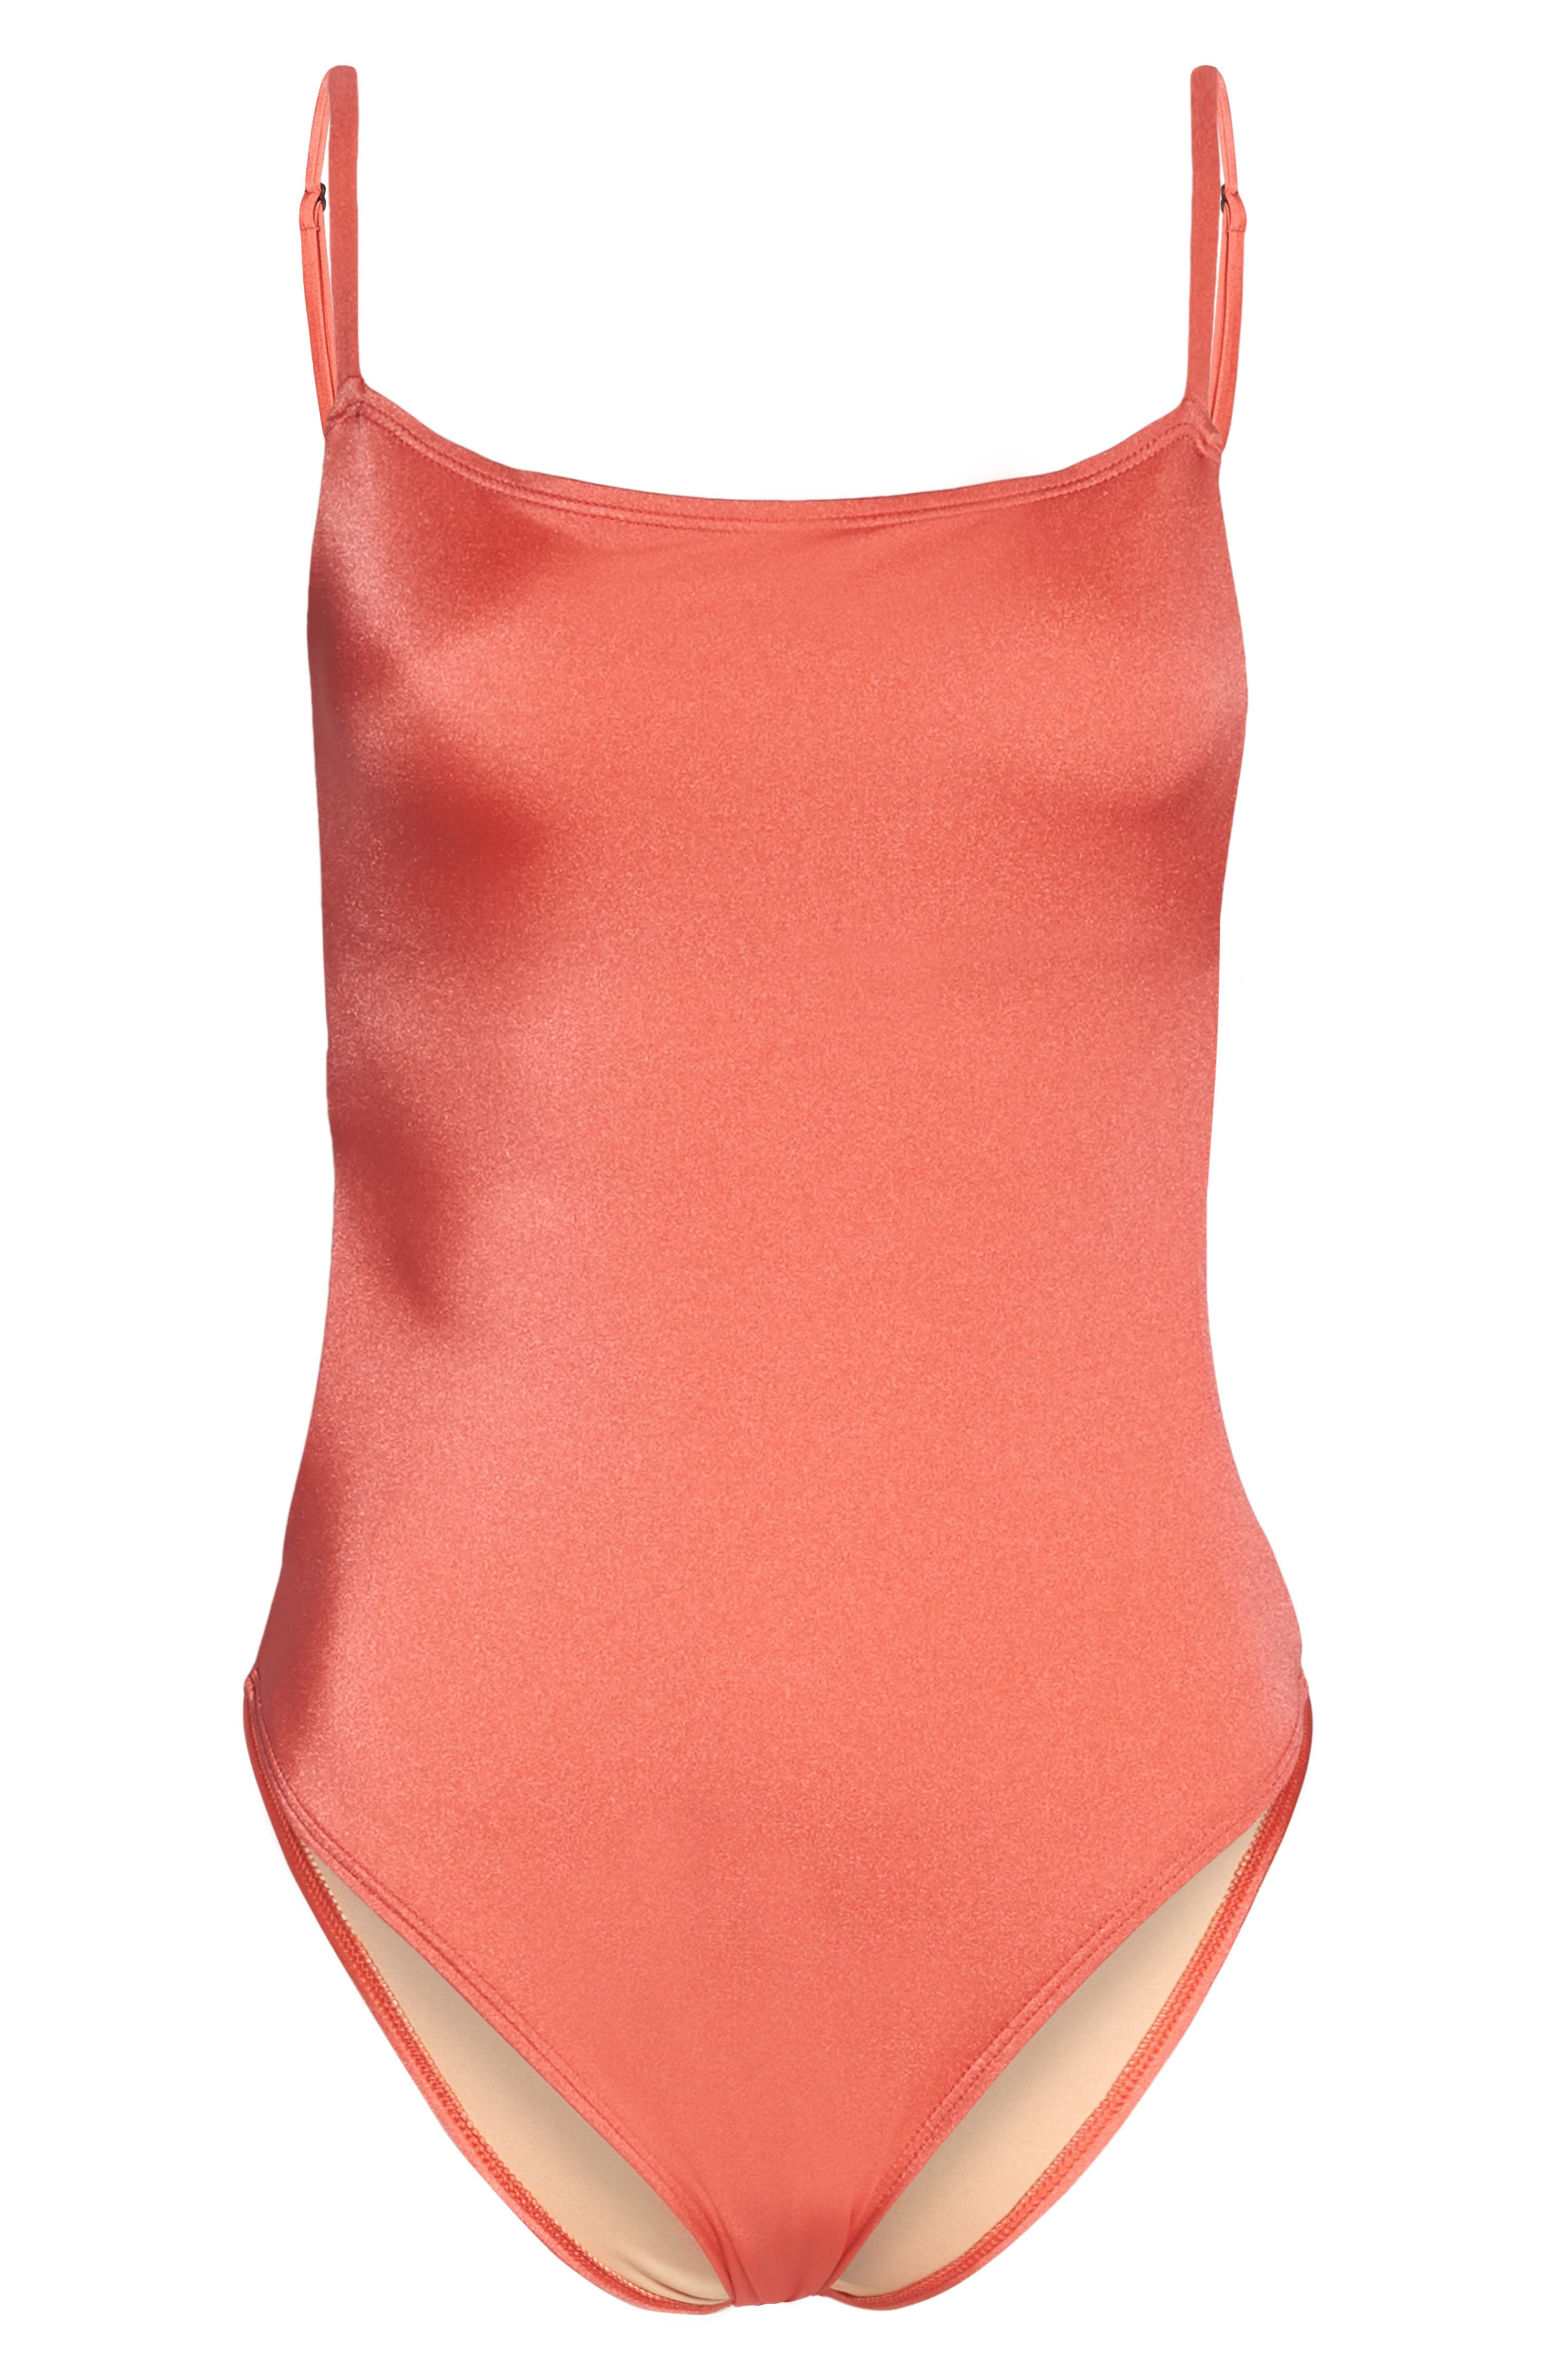 Retro One-Piece Swimsuit,                             Alternate thumbnail 6, color,                             958